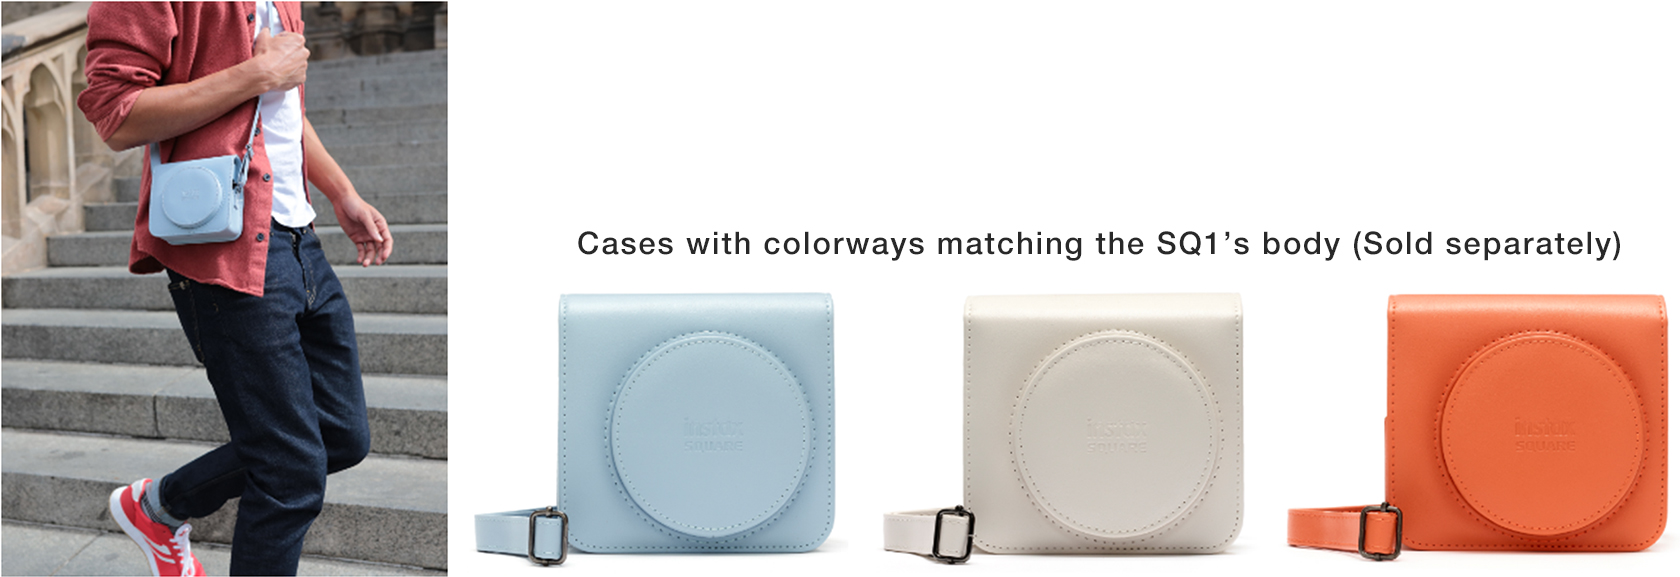 [Image]Cases with colorways matching the SQ1's body (Sold separately)